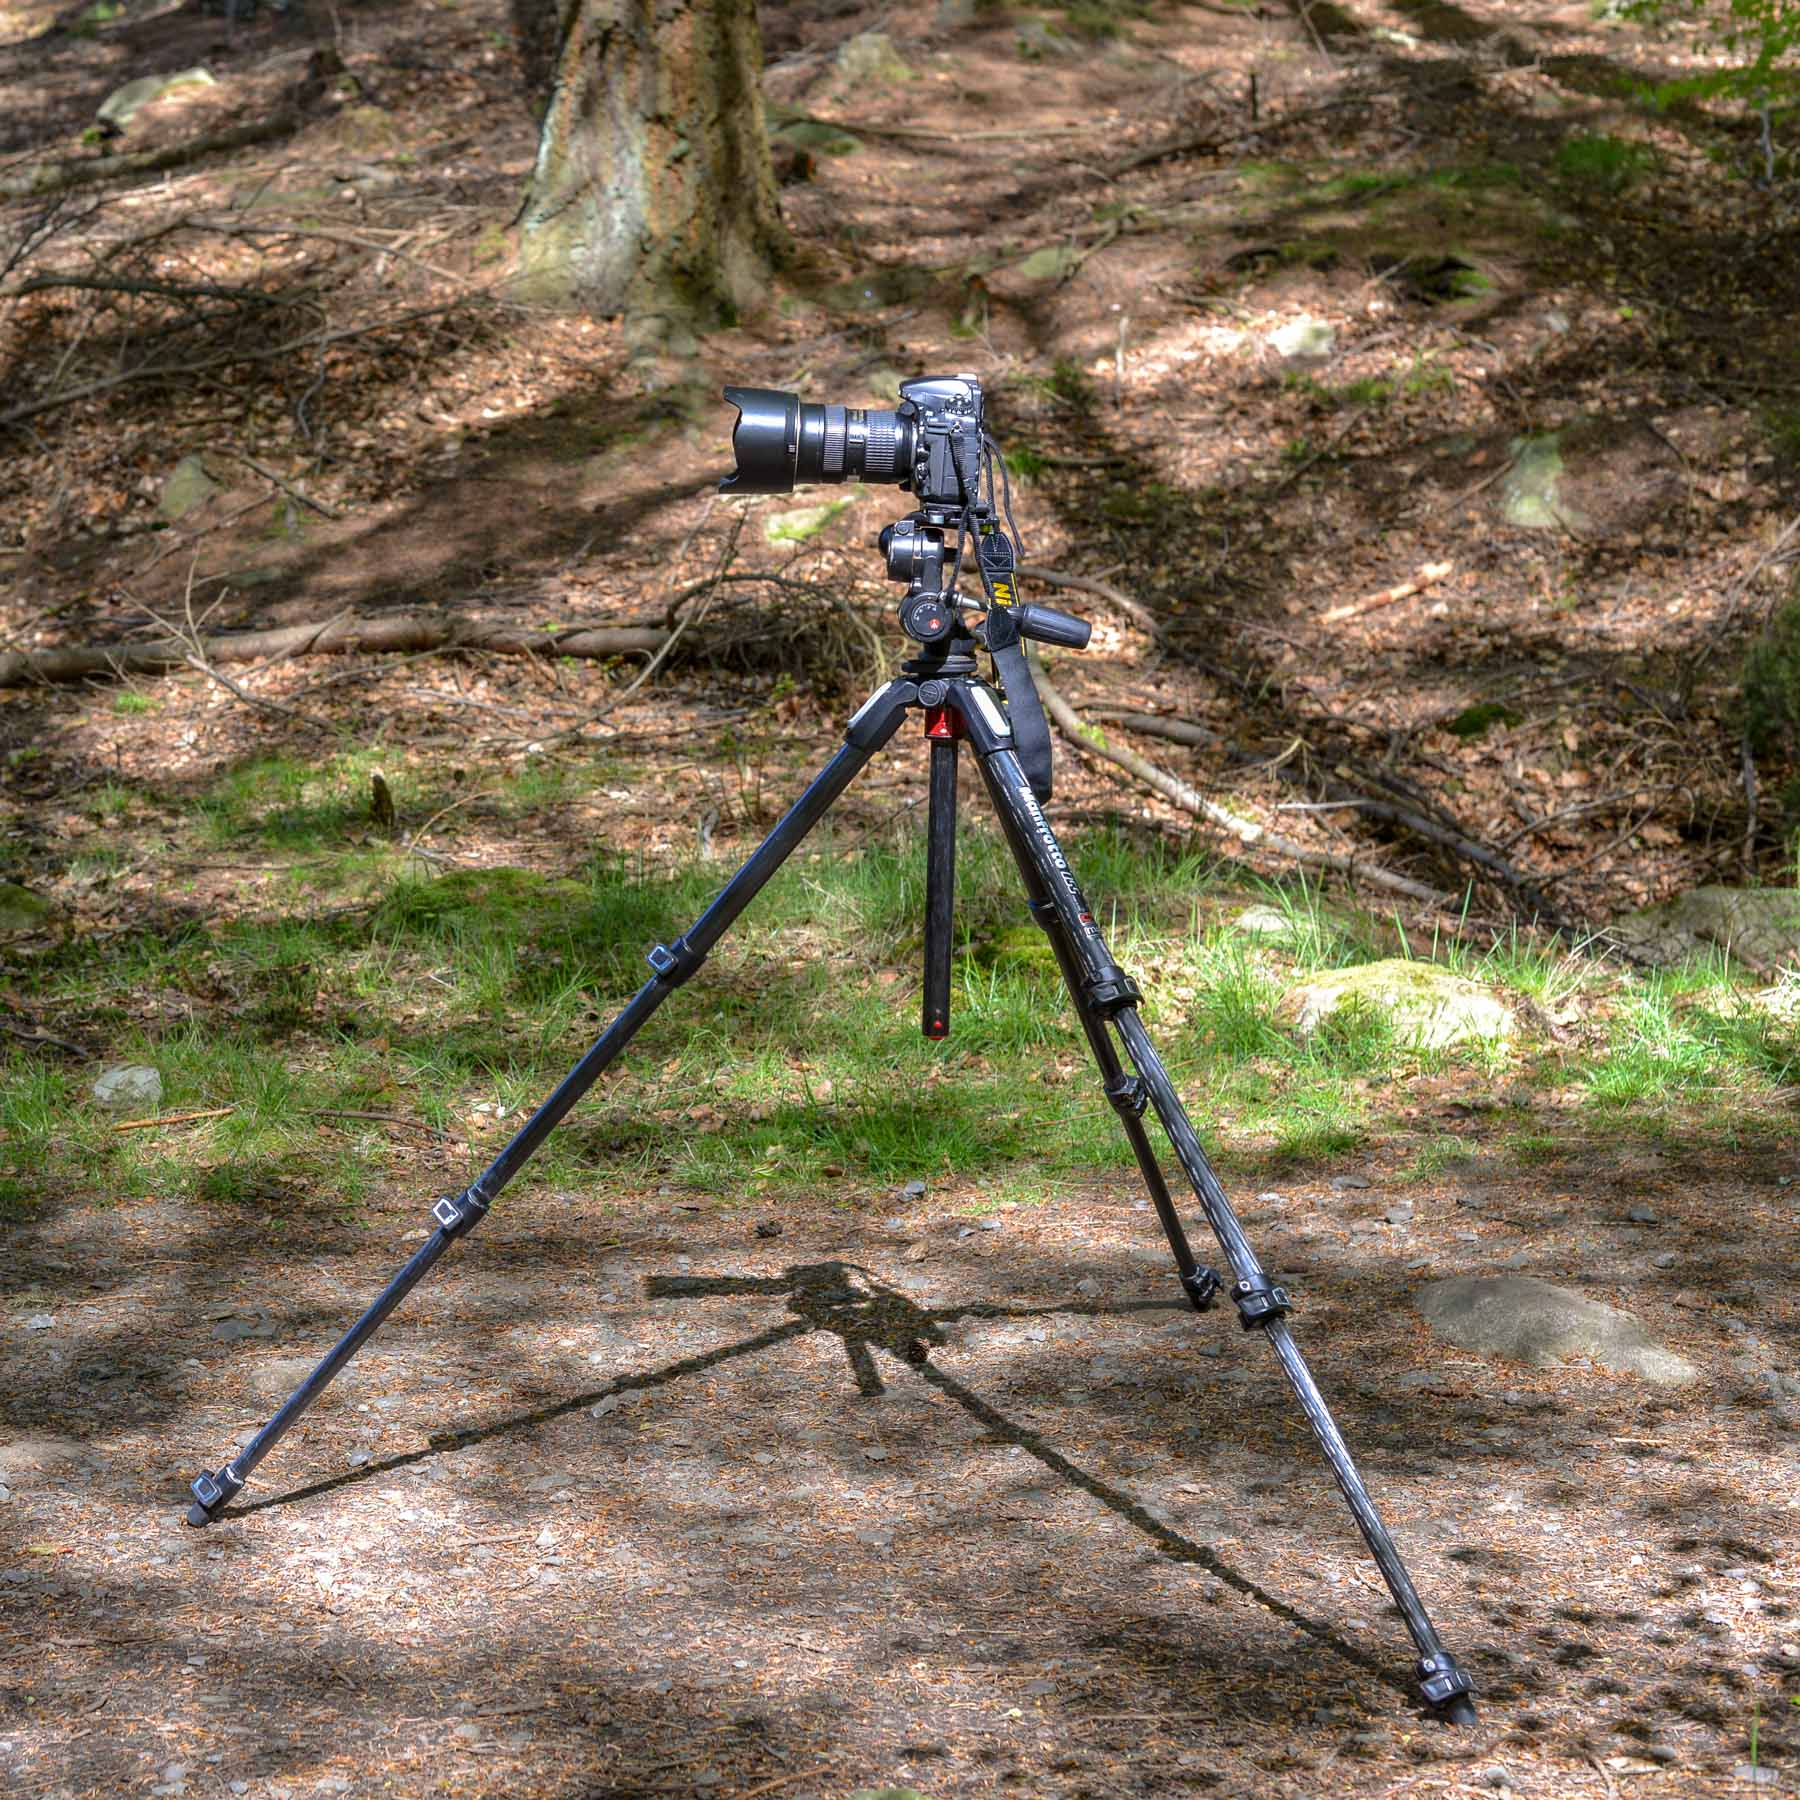 Set the front leg of the tripod directly underneath the lens.